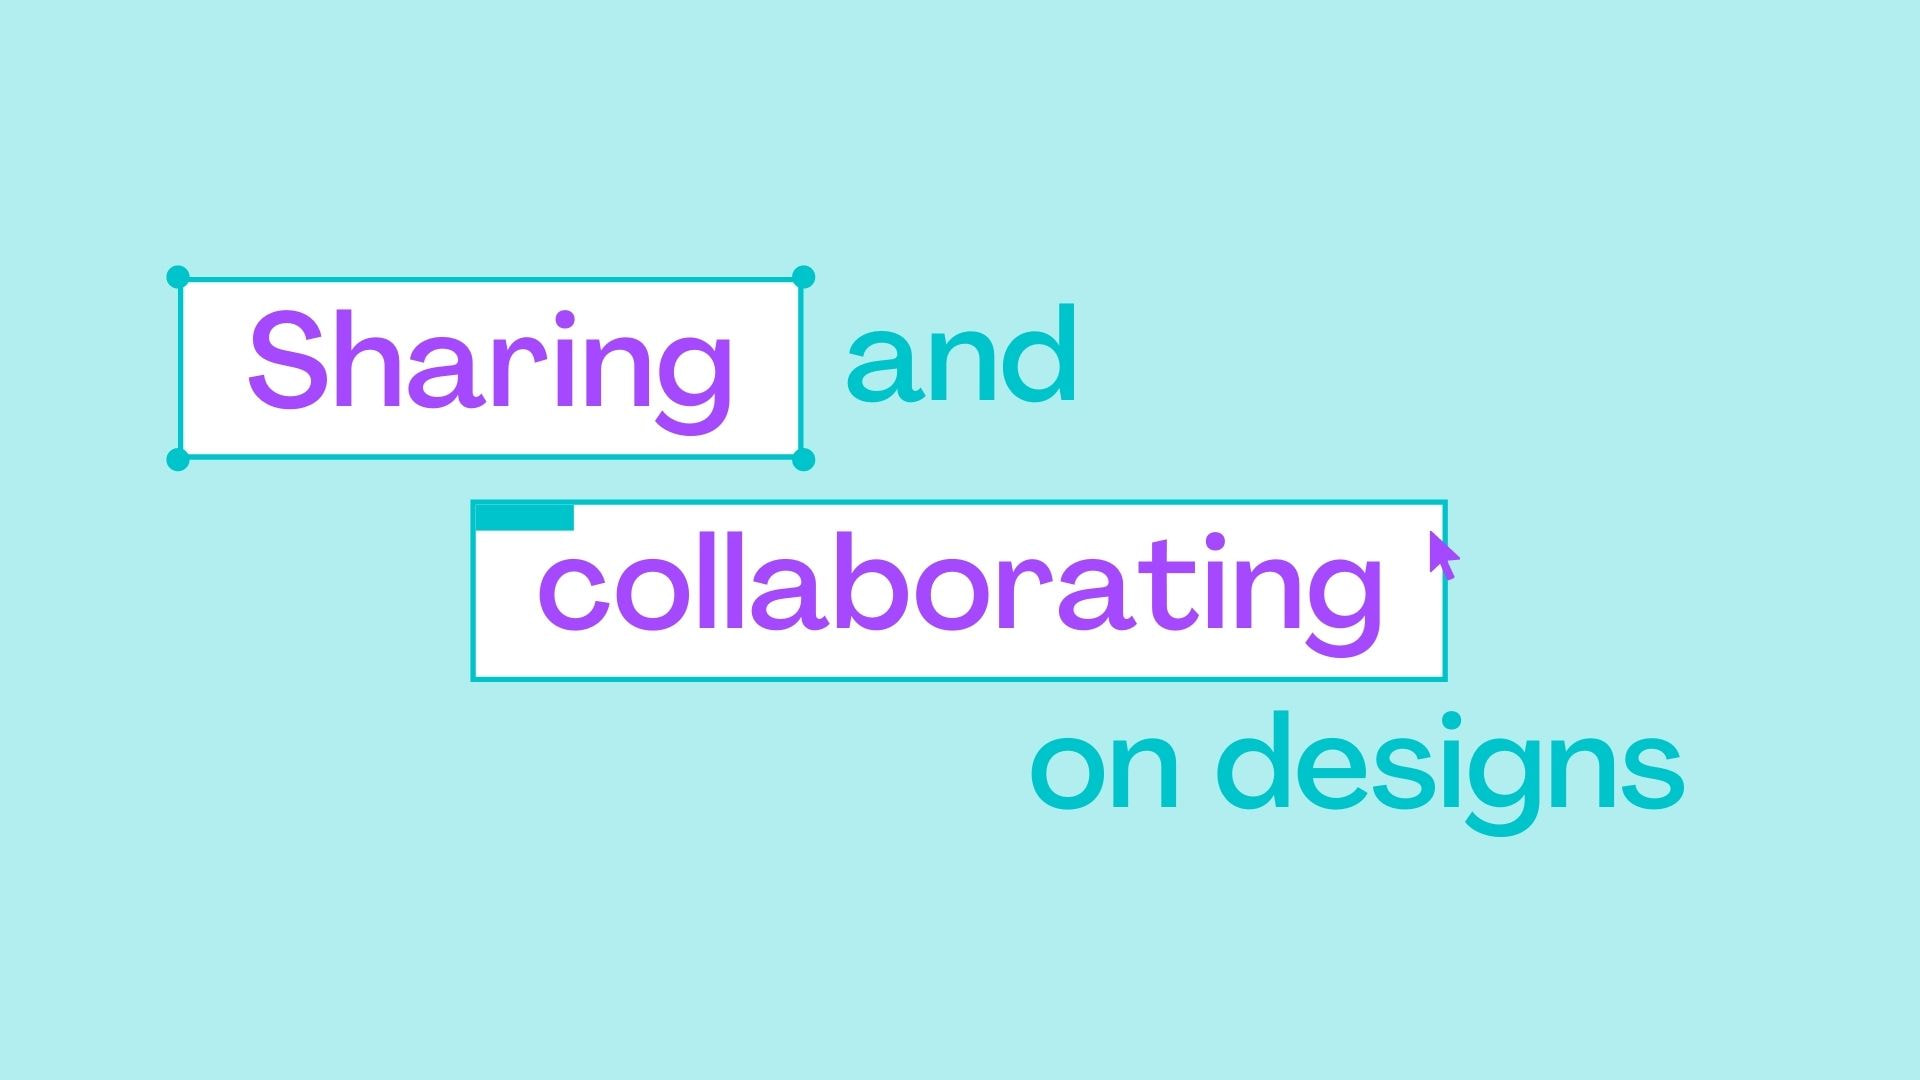 1.8 Sharing and collaborating on designs